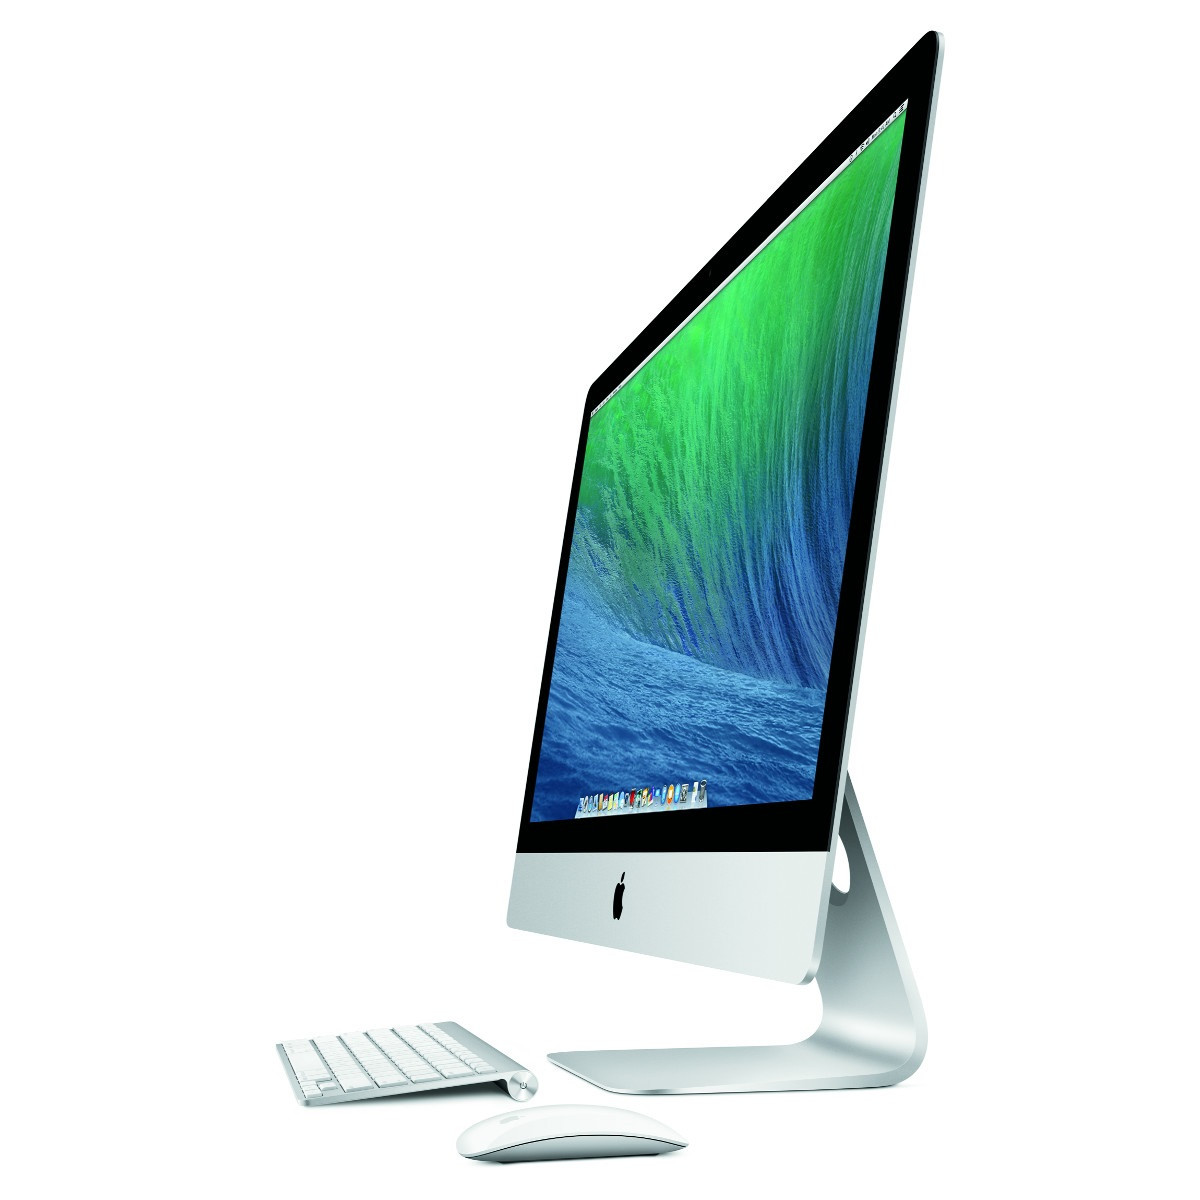 apple imac 27 pouces me088f a me088f a achat vente ordinateur mac sur. Black Bedroom Furniture Sets. Home Design Ideas